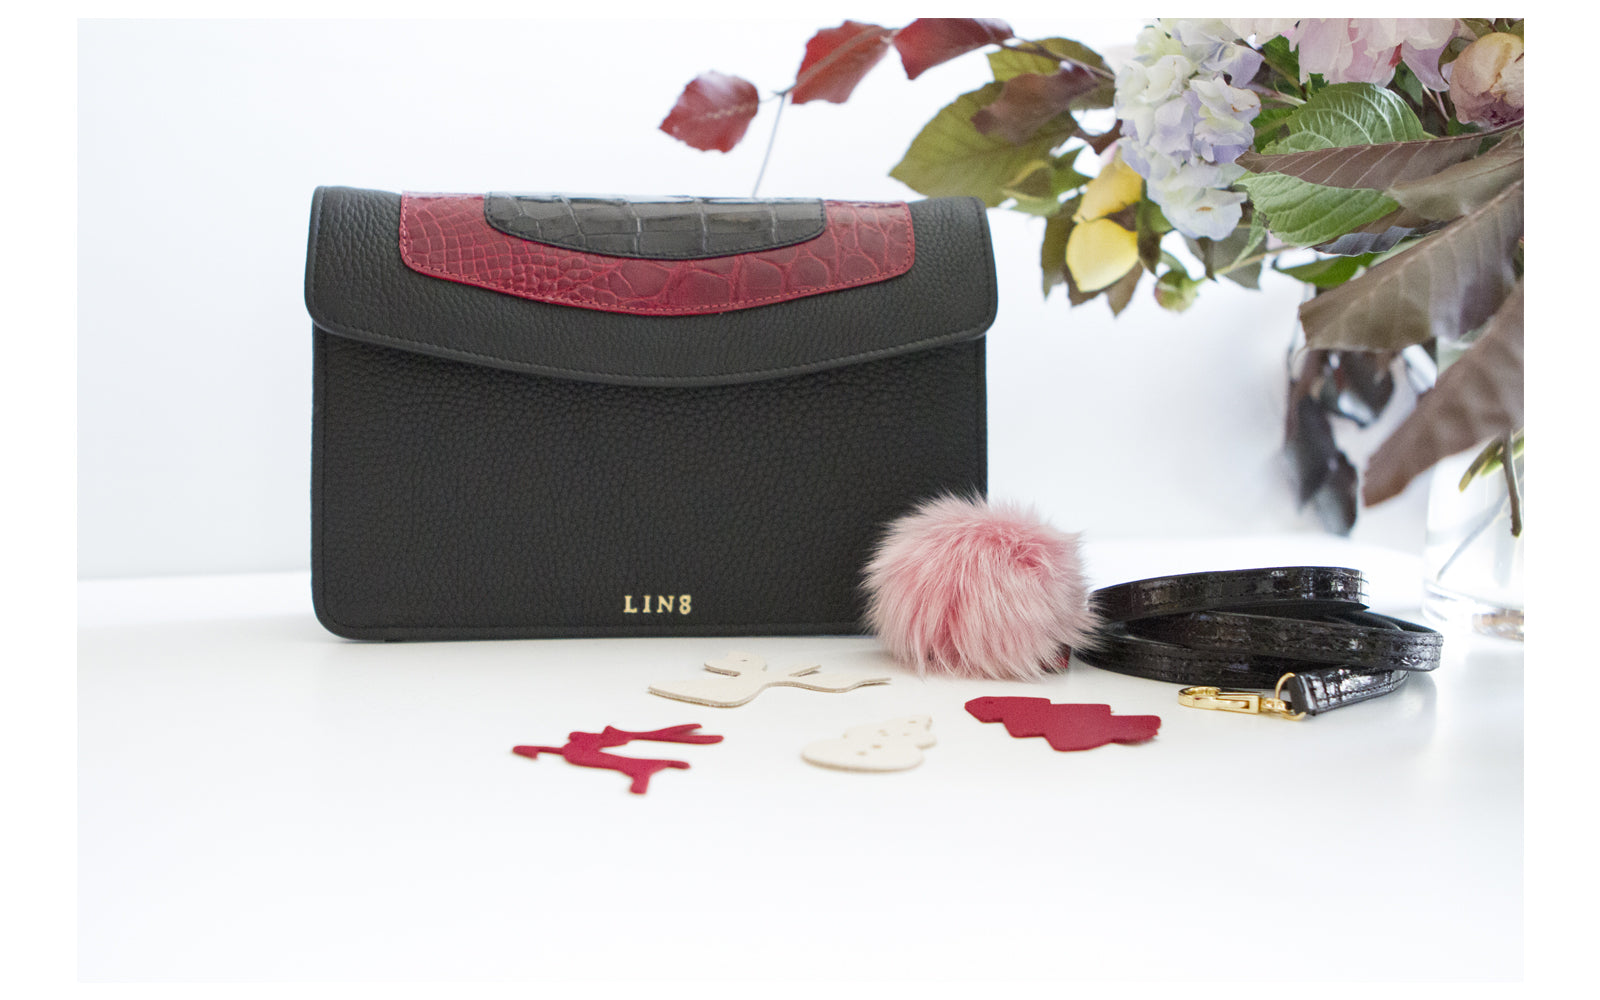 LIN8 Australia's bespoke luxury leather goods made in Australia. Made with genuine exotic crocodile leather. Create, design your leather goods, bag, handbag, purse, clutch, wallet, pet dog collar, gym lifting pulling straps